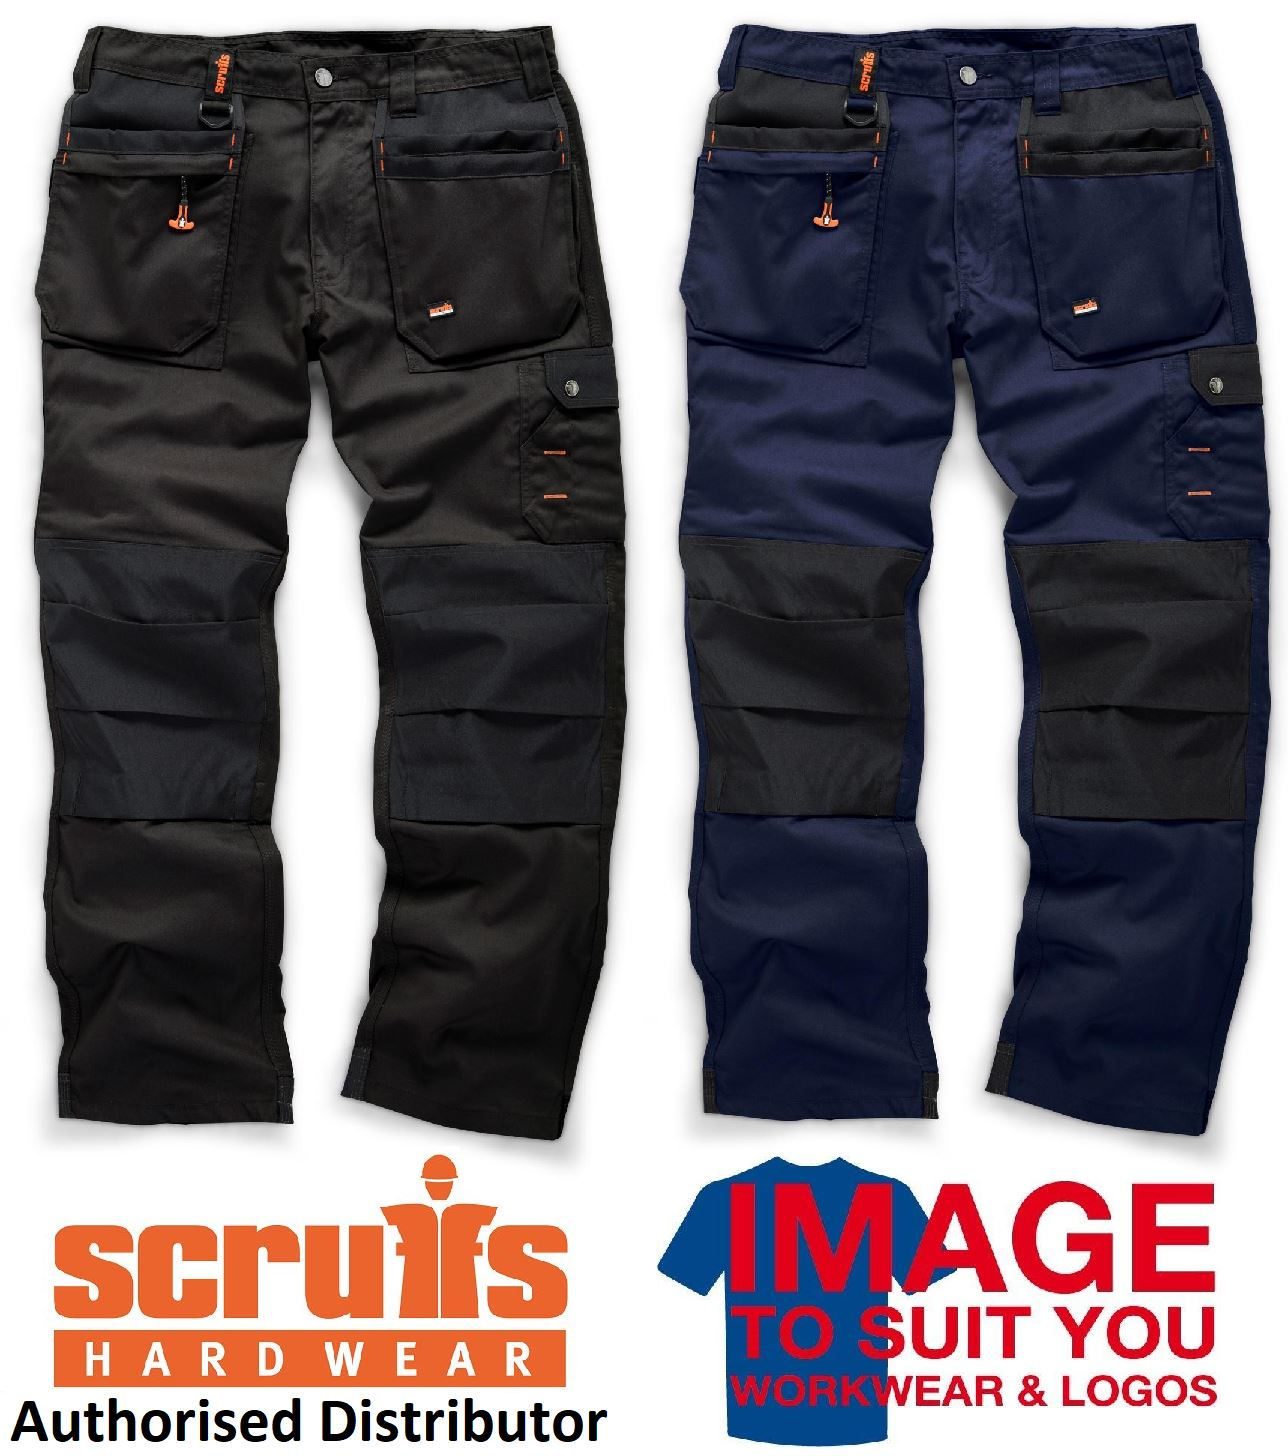 Scruffs Worker Plus Trousers Black Navy Size 28-38 With Free Knee Pad Or Belt